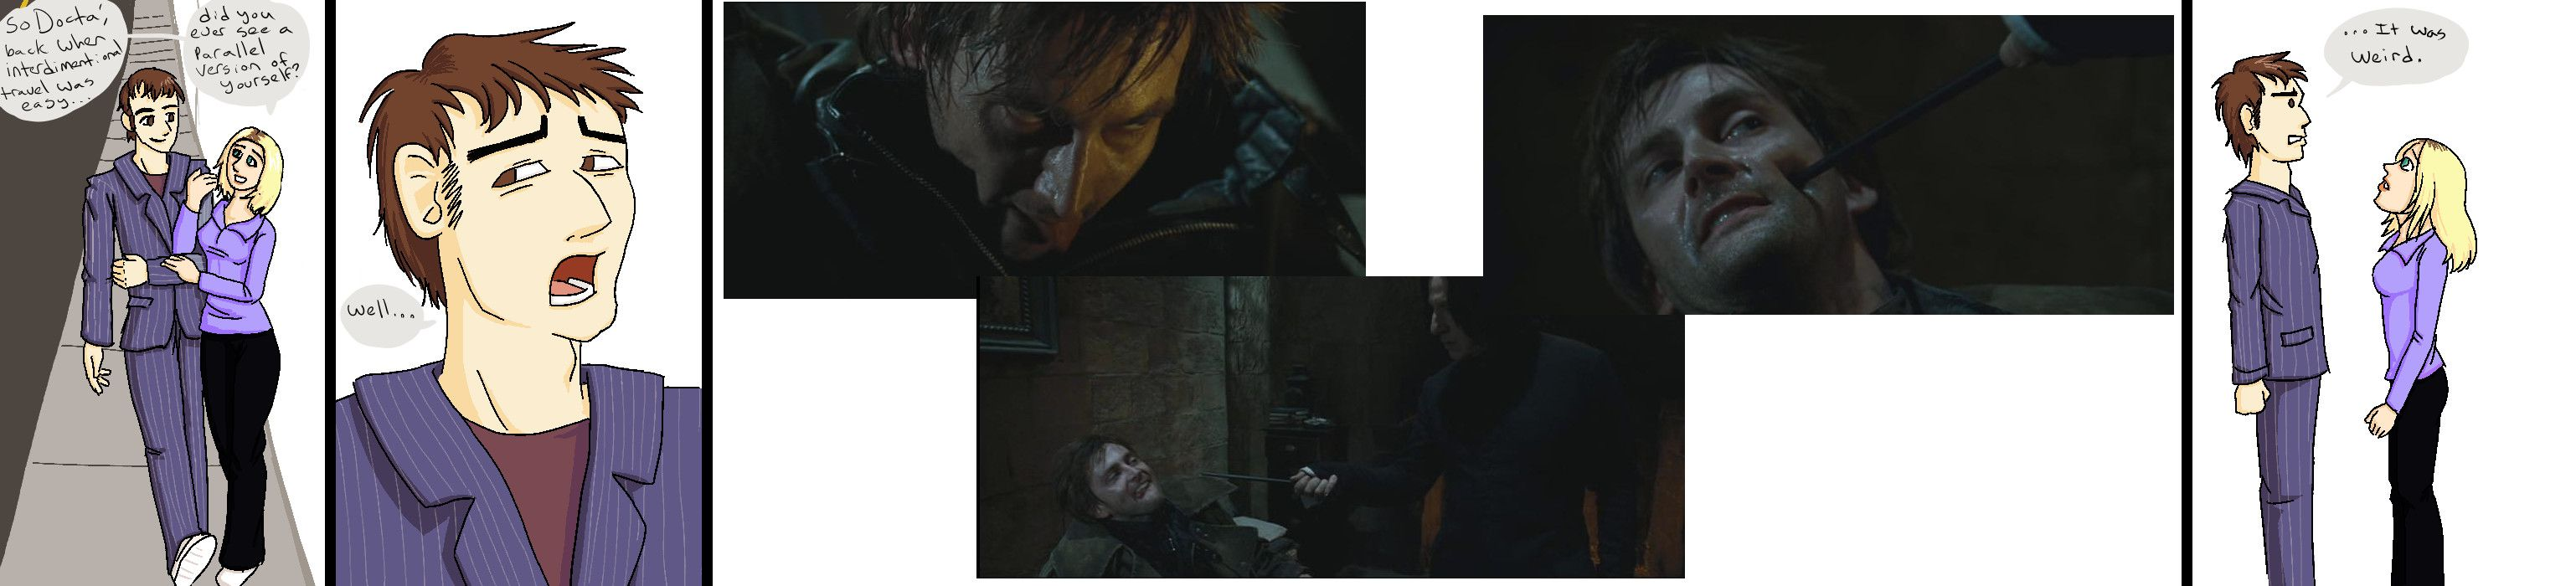 The Doctor as Barty Crouch Jr. by Flameshadow117.deviantart.com